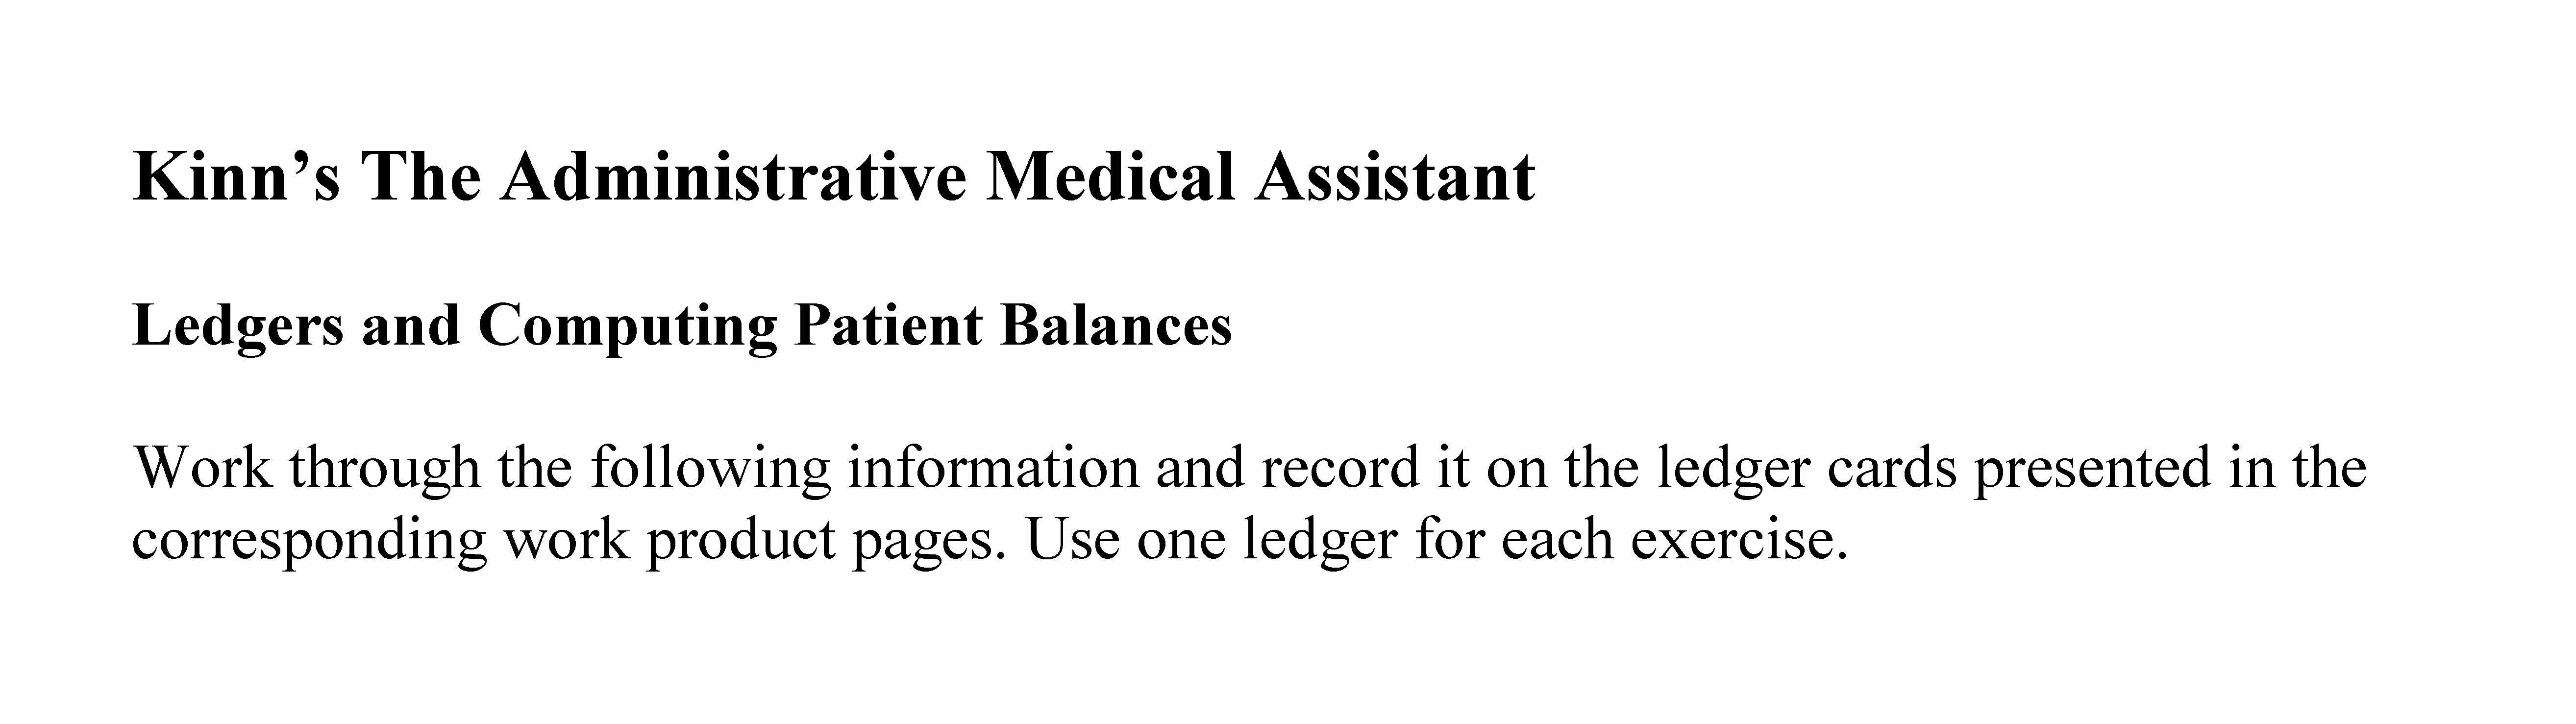 Business Assignment: Ledgers And Computing Patient Balances